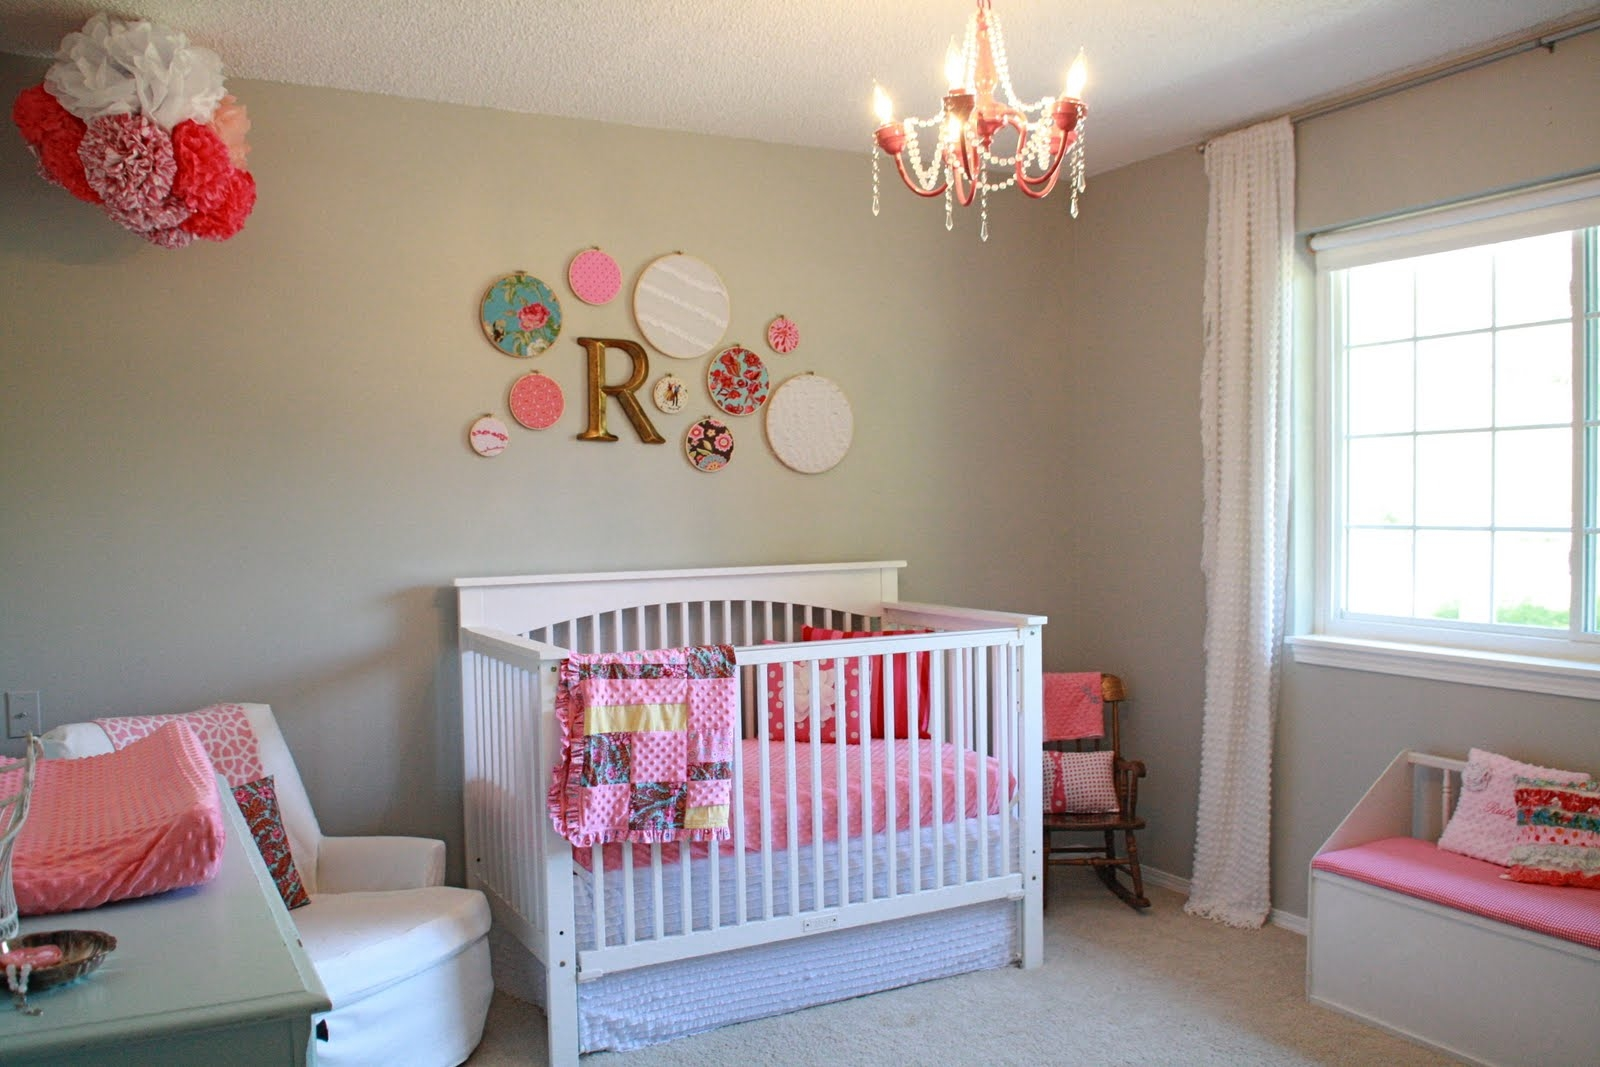 Getting Ba Nursery Room Chandeliers Home Interior Decoration With Regard To Chandeliers For Girl Nursery (View 19 of 25)